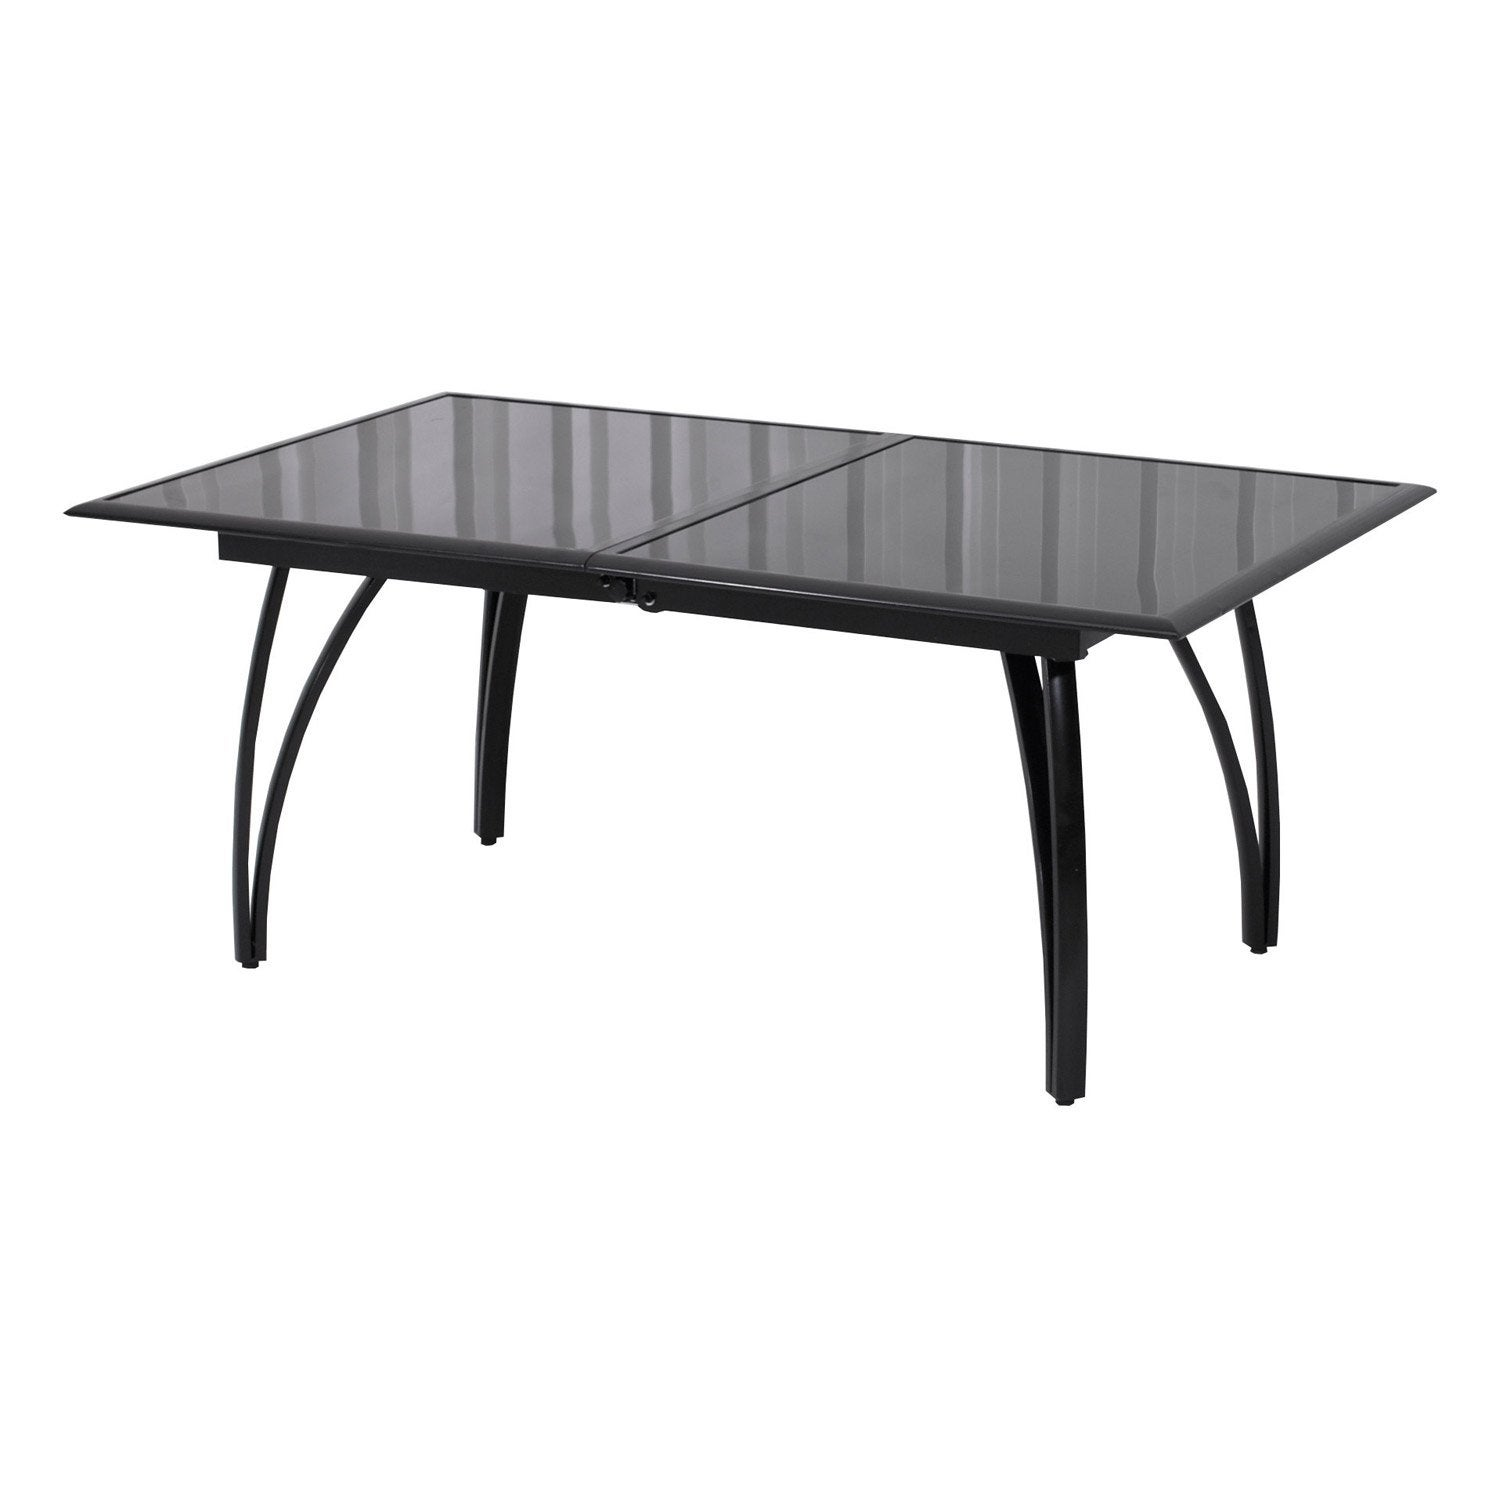 Table de jardin rectangulaire noir 10 personnes leroy merlin for Table exterieur 10 personnes